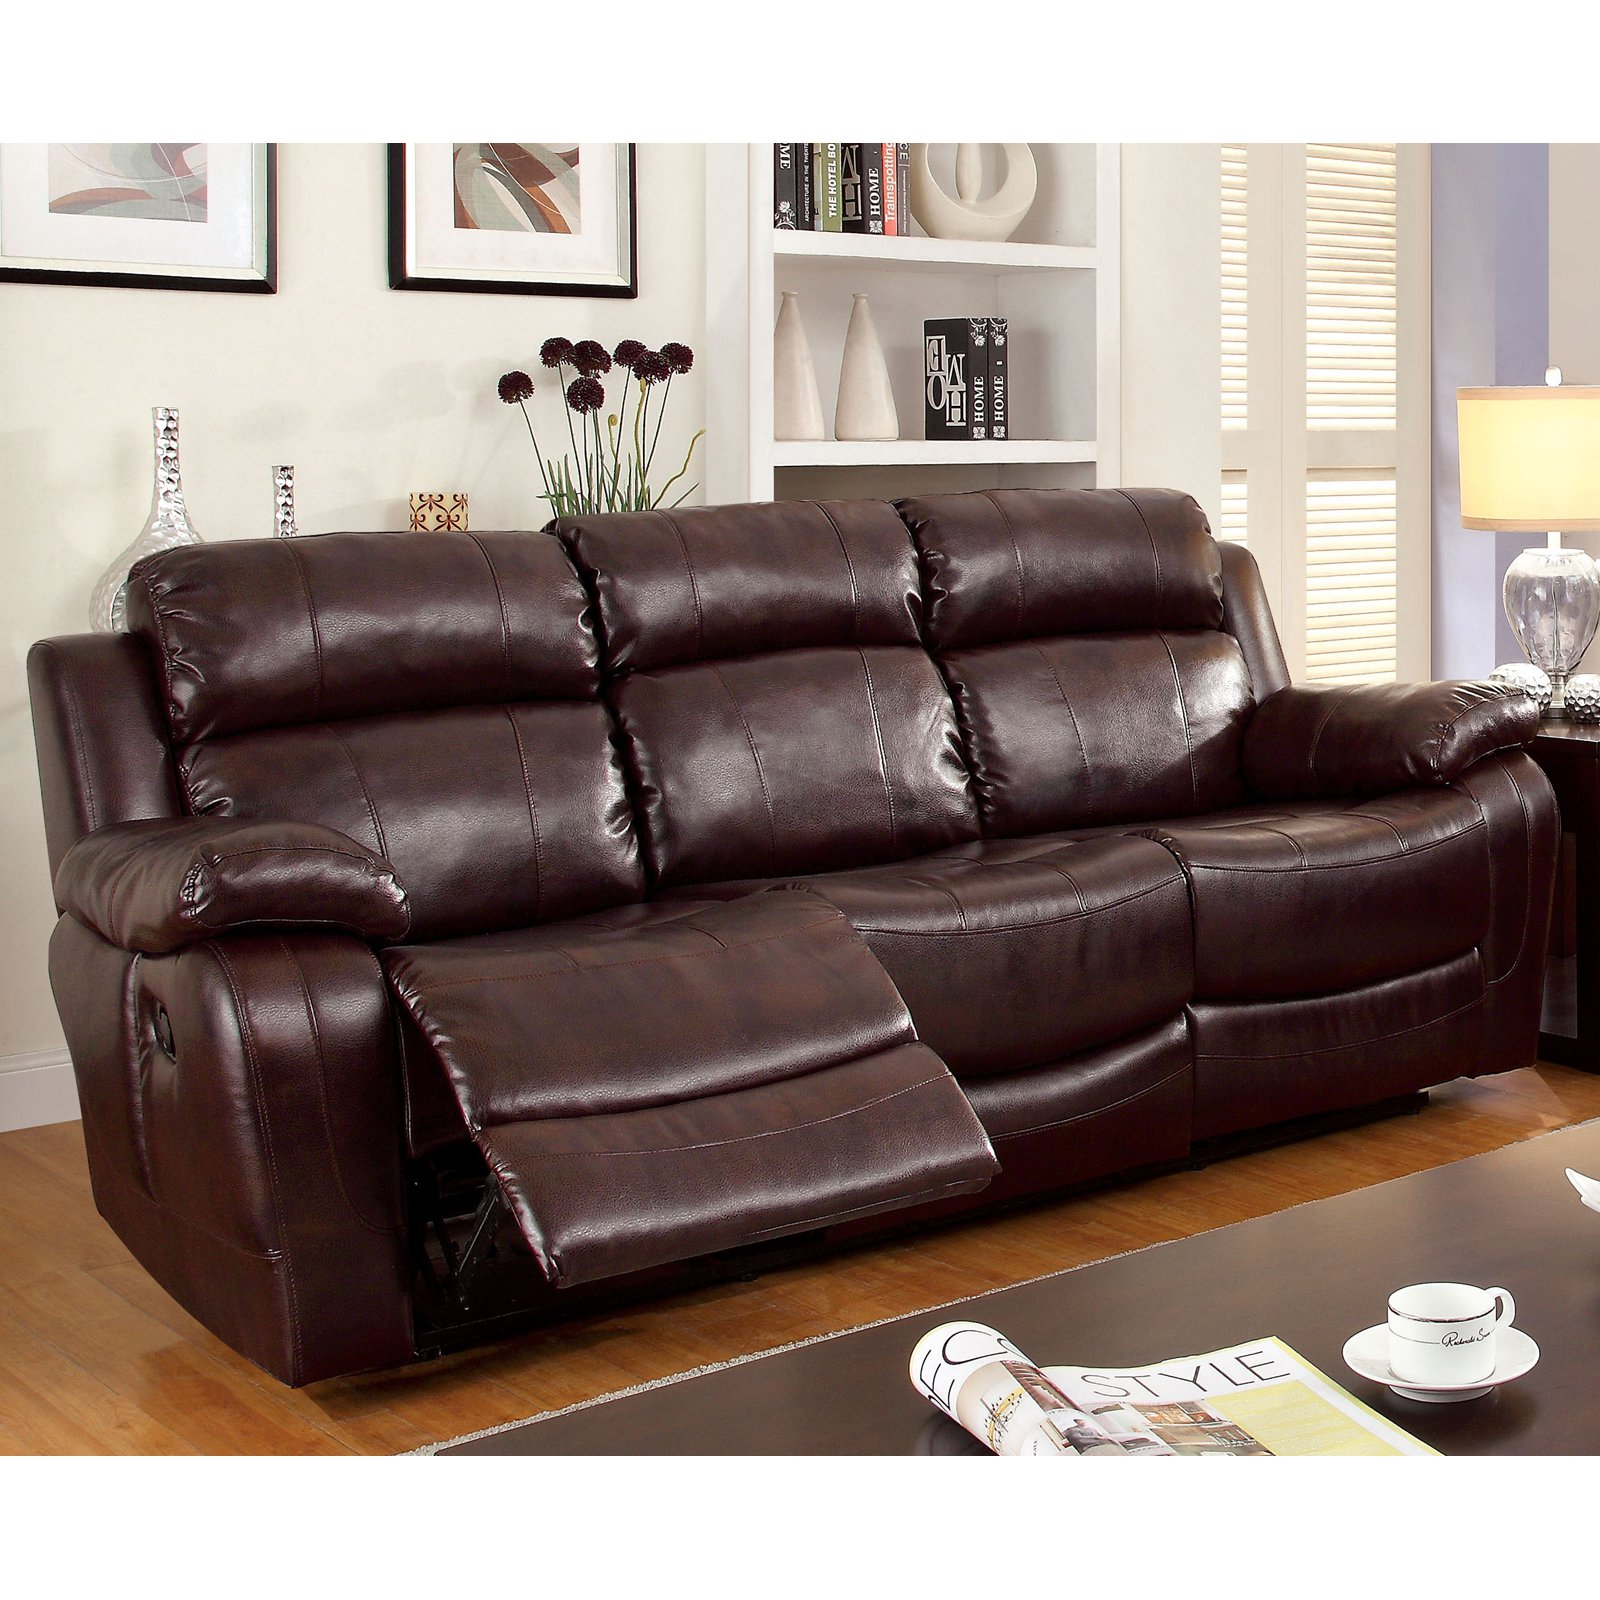 Furniture of America Hartwig Recliner Sofa with Drop-Down Console